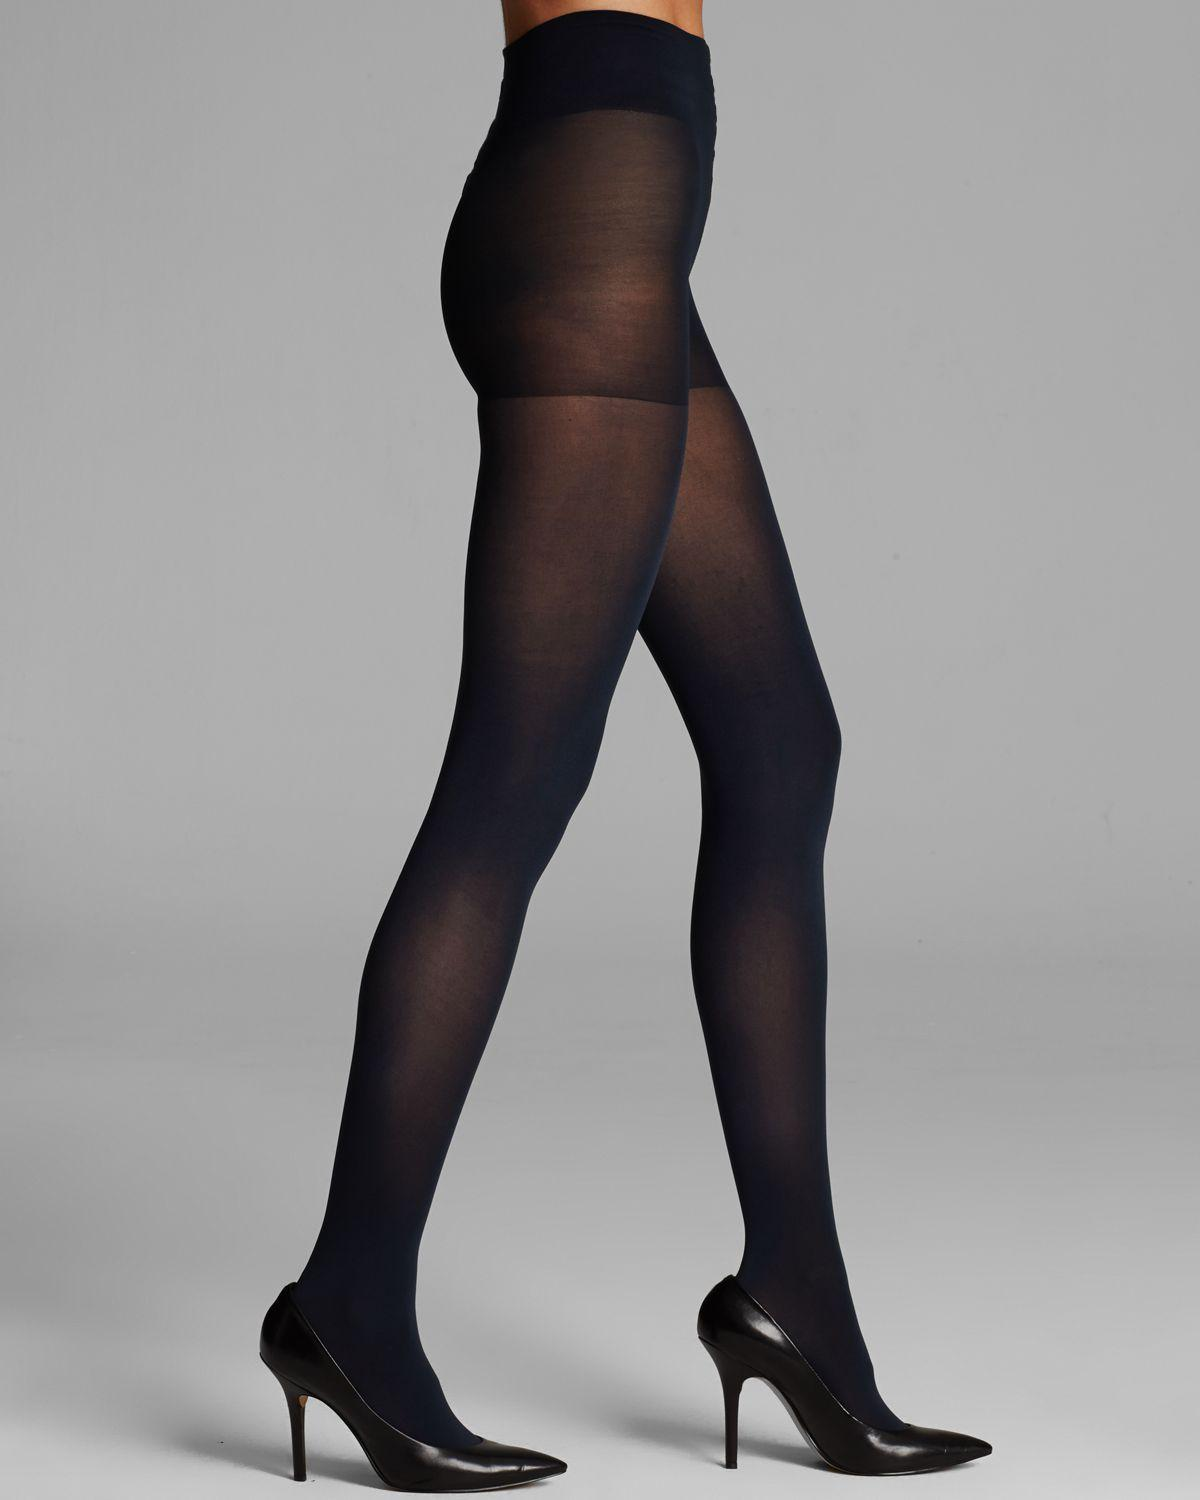 fcc0c4e9c22 Lyst - DKNY Opaque Coverage Control Top Tights in Blue